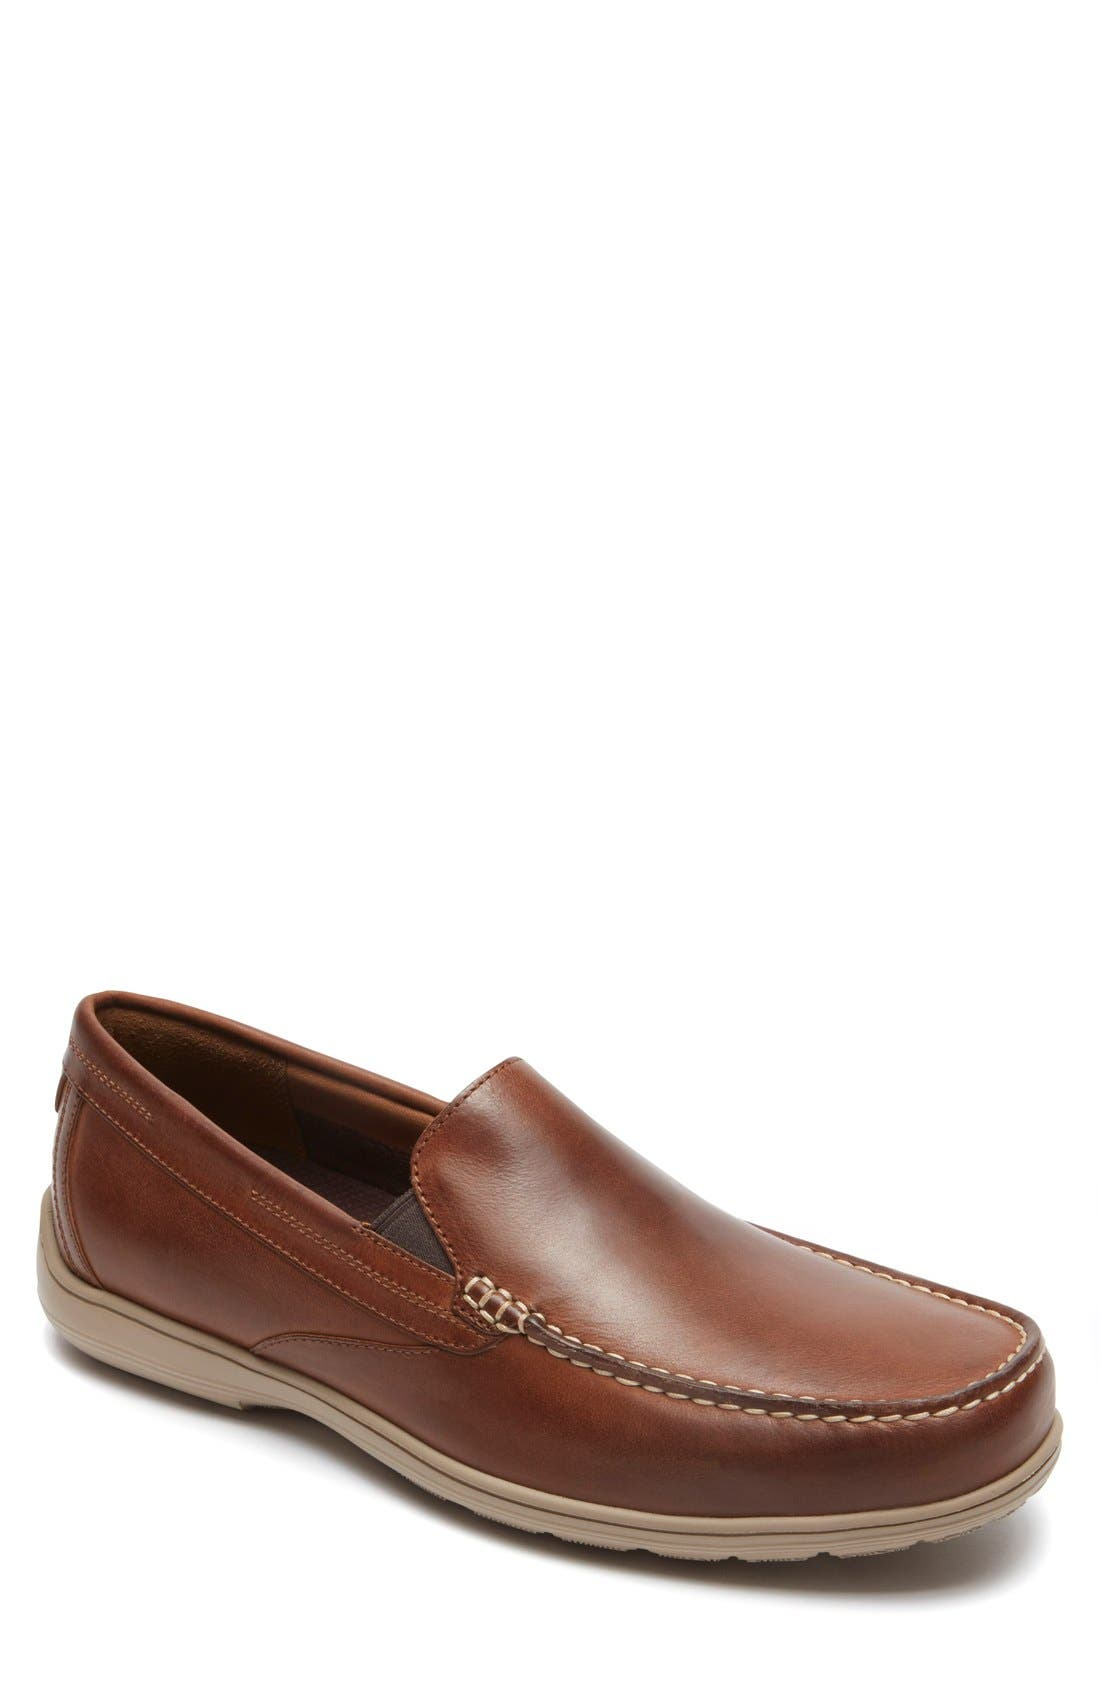 Total Motion Loafer,                             Main thumbnail 2, color,